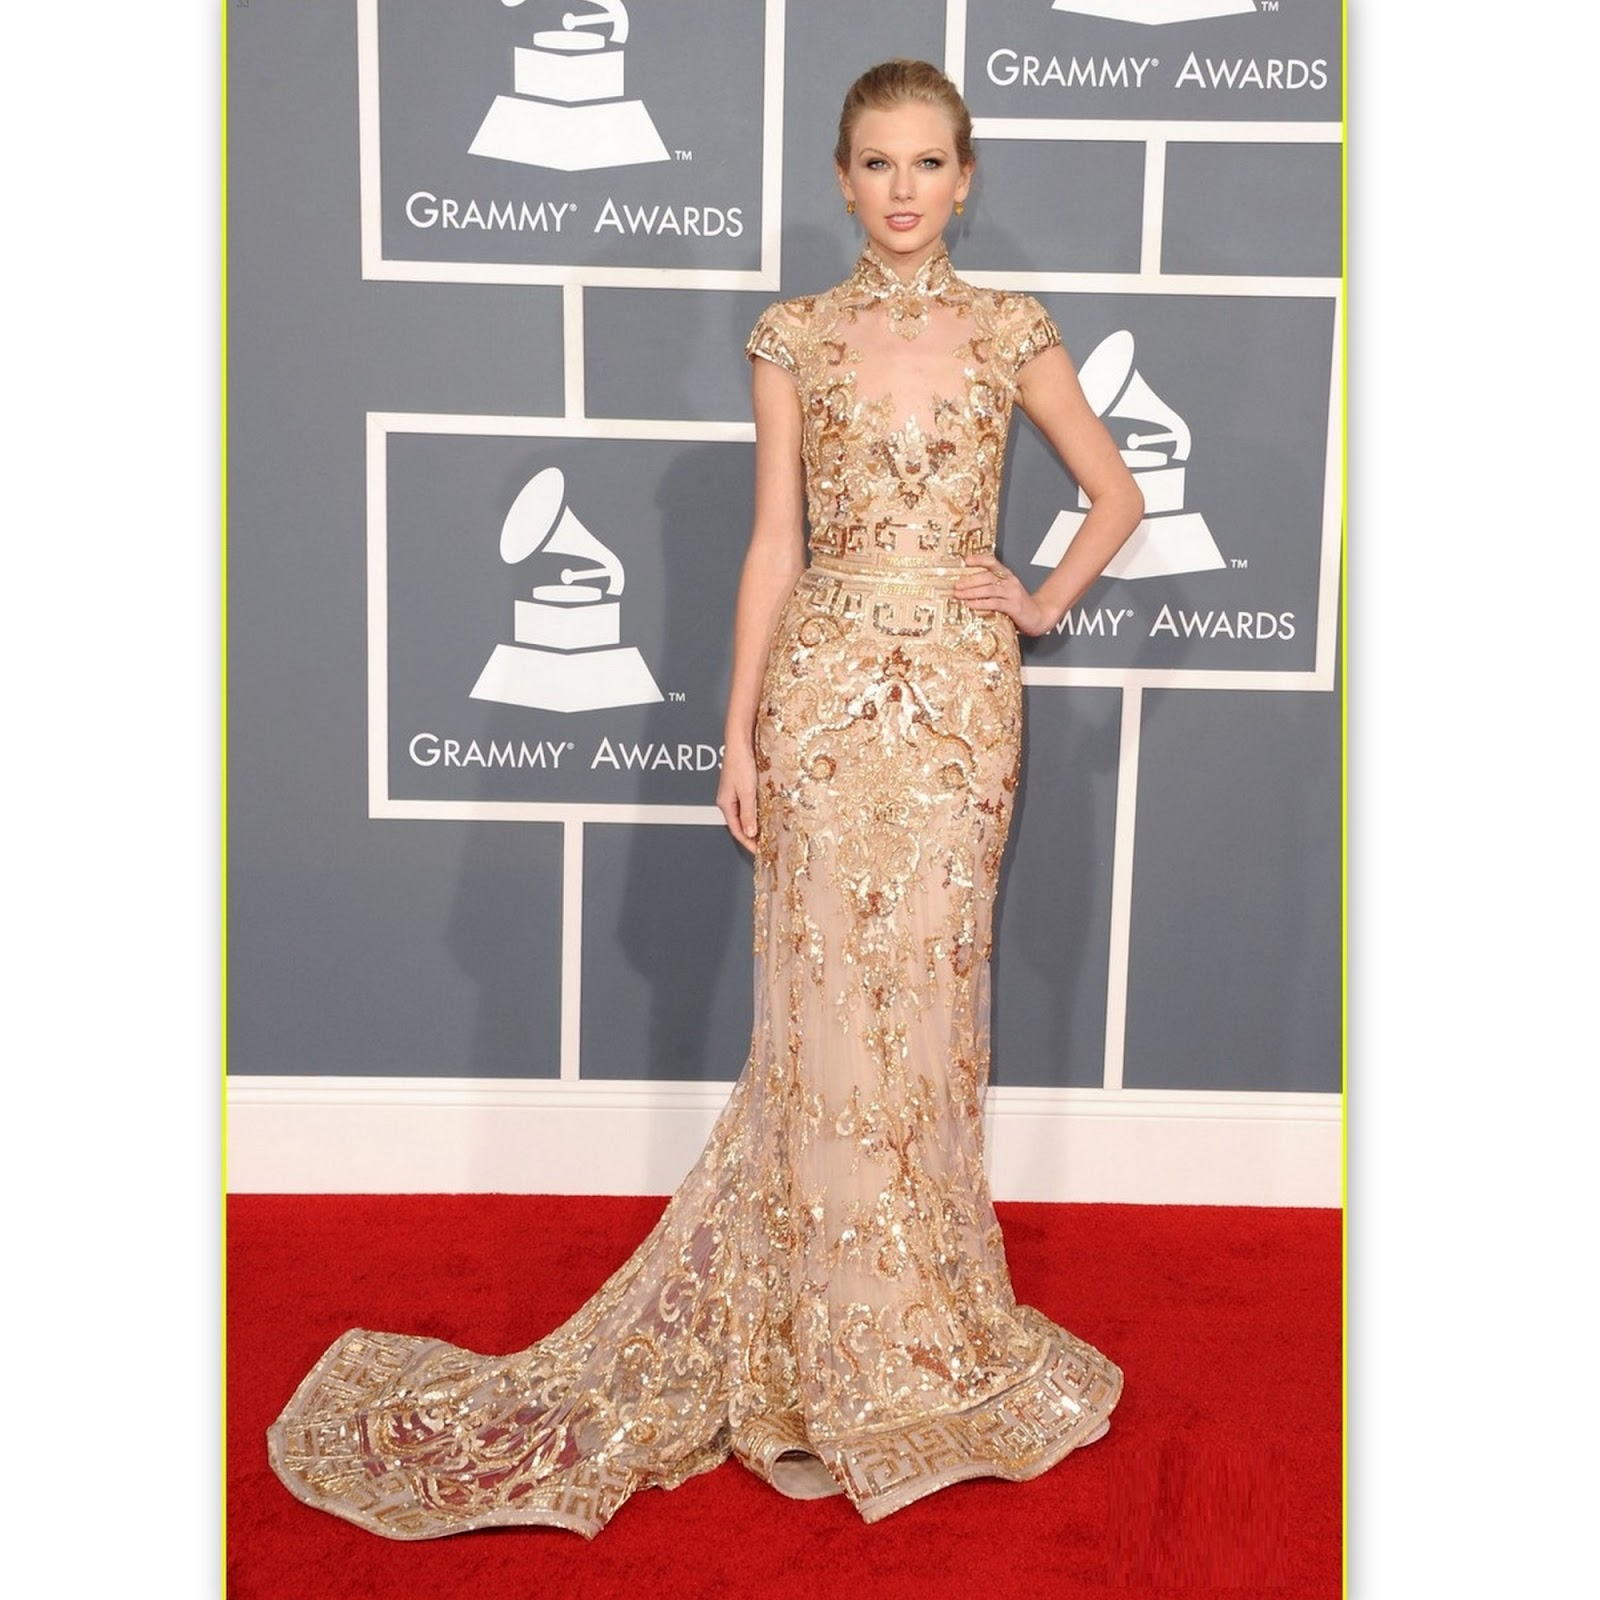 styledelights grammy awards 2012 red carpet